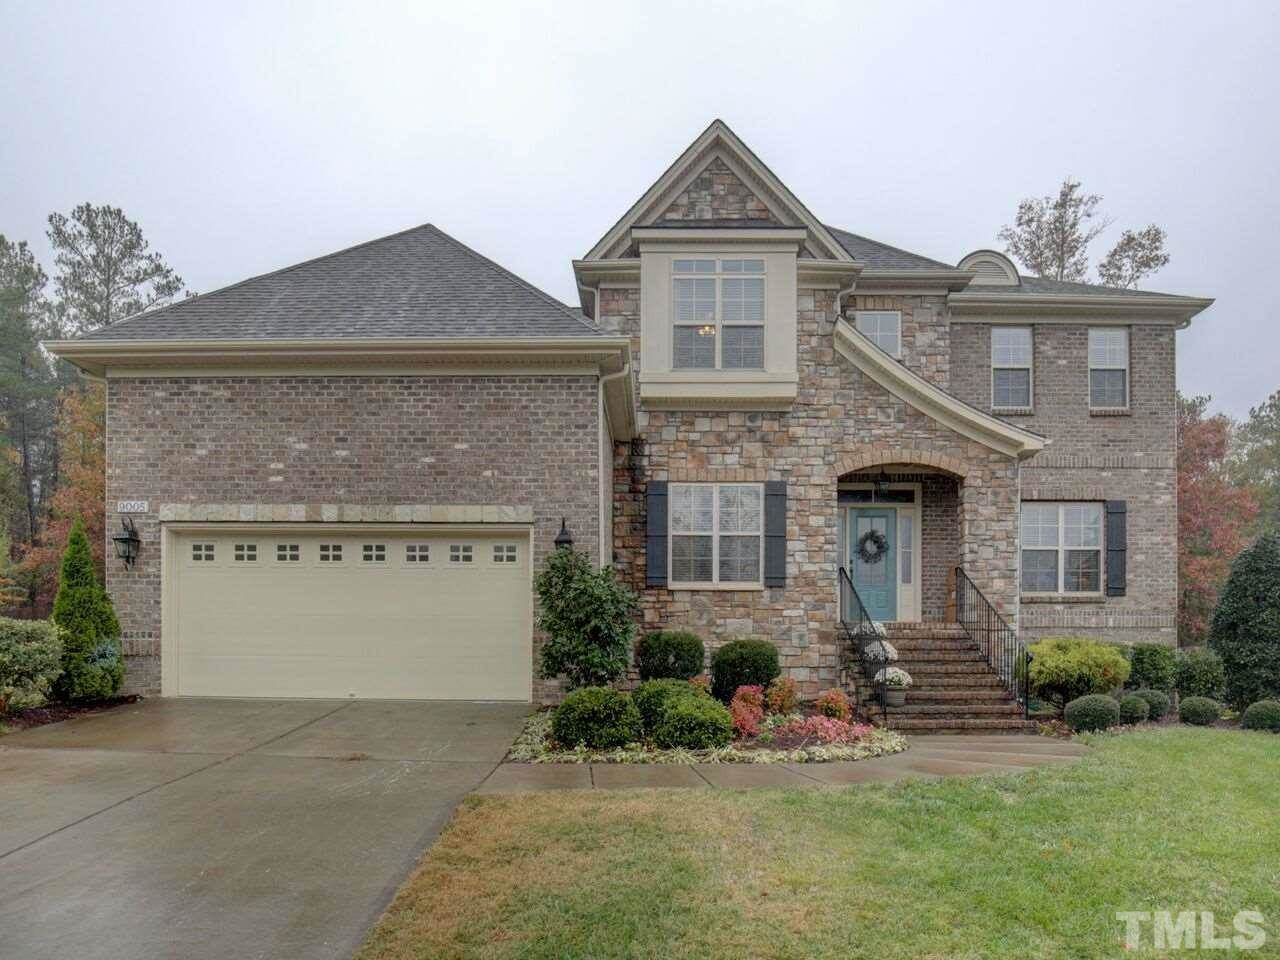 9005 Willington Place, Wake Forest, NC 27587